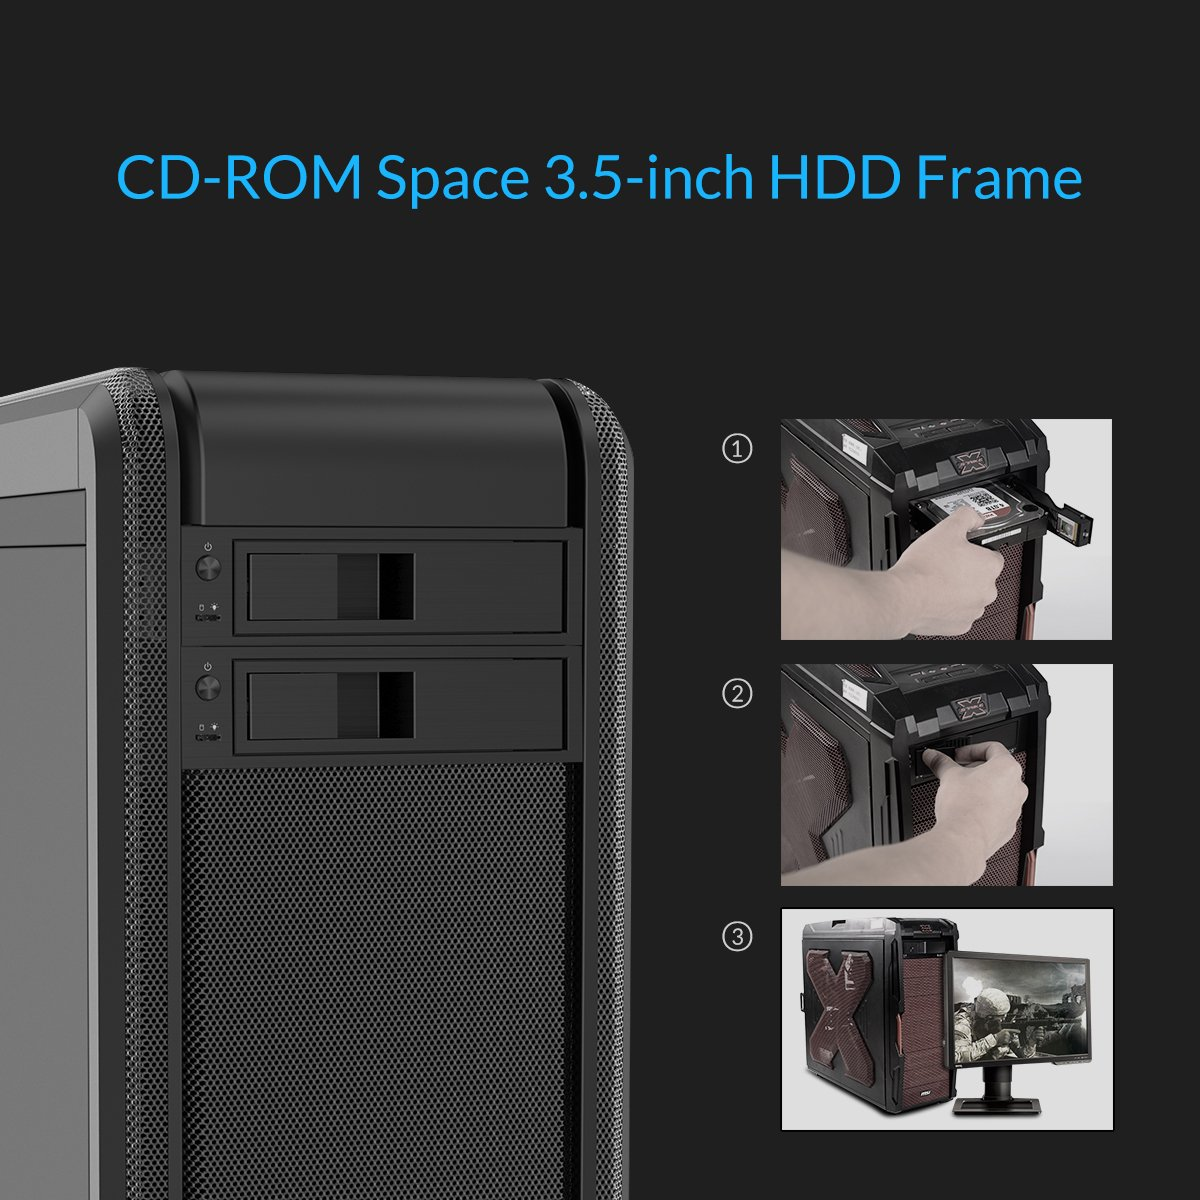 Orico 1106ss 525 Trayless Hot Swap Mobile Rack Cd Rom 3569s3 35 Inch Hdd Enclosure Internal Sata Hard Drive Ssd Adapter Black Computers Accessories